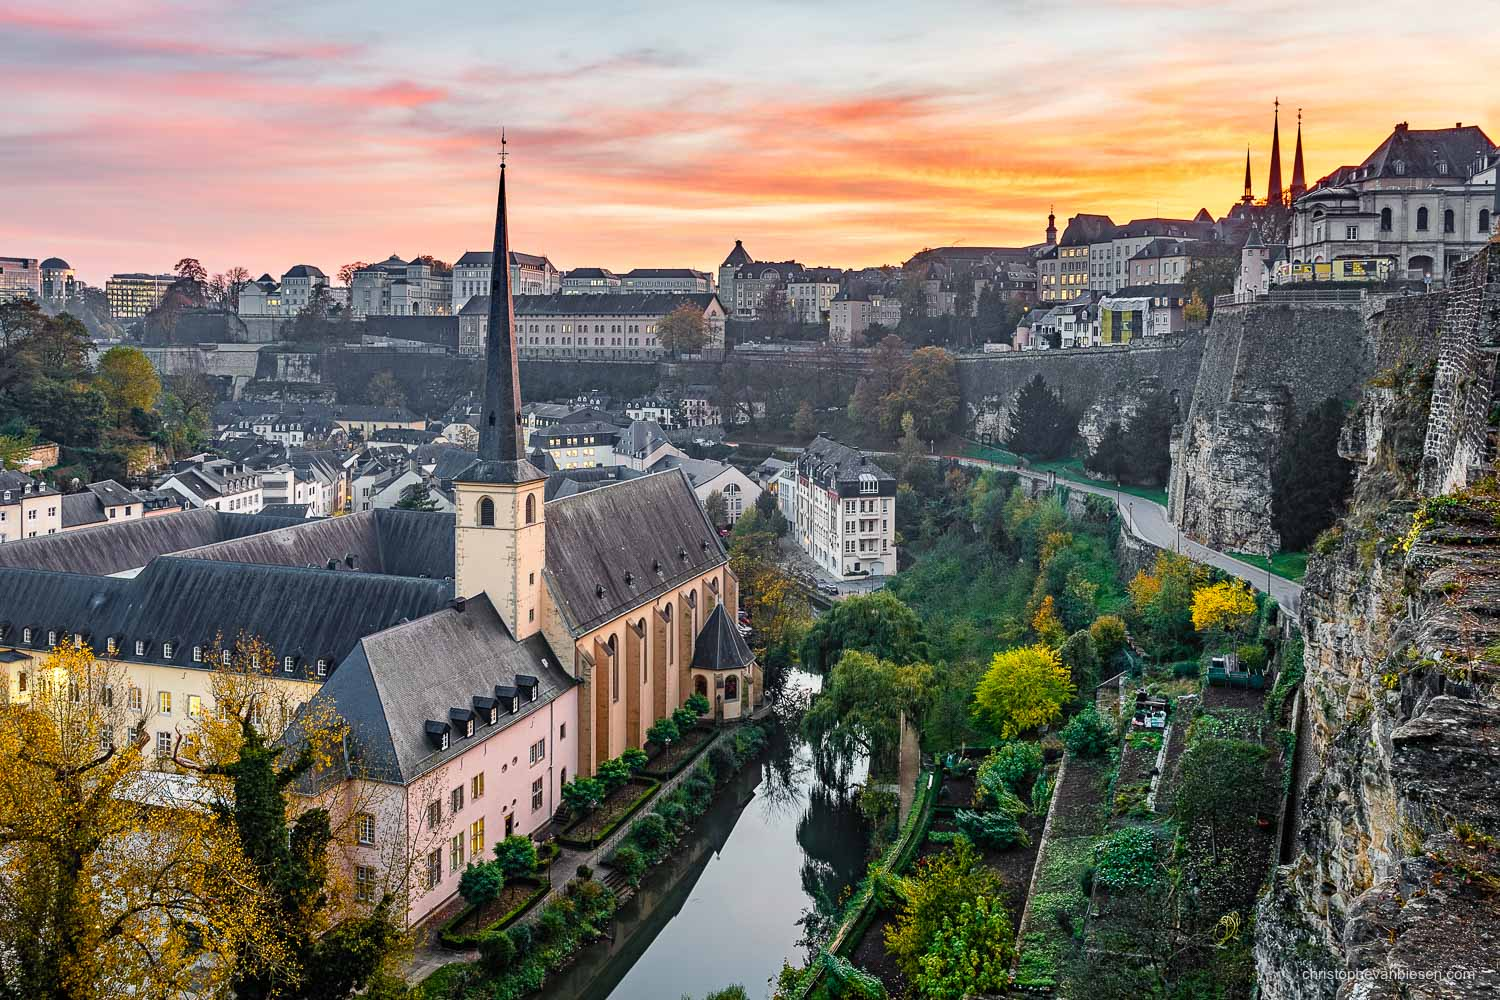 Autumn in Luxembourg - Pink and orange sunset over Luxembourg City during fall - Crimson Twilight